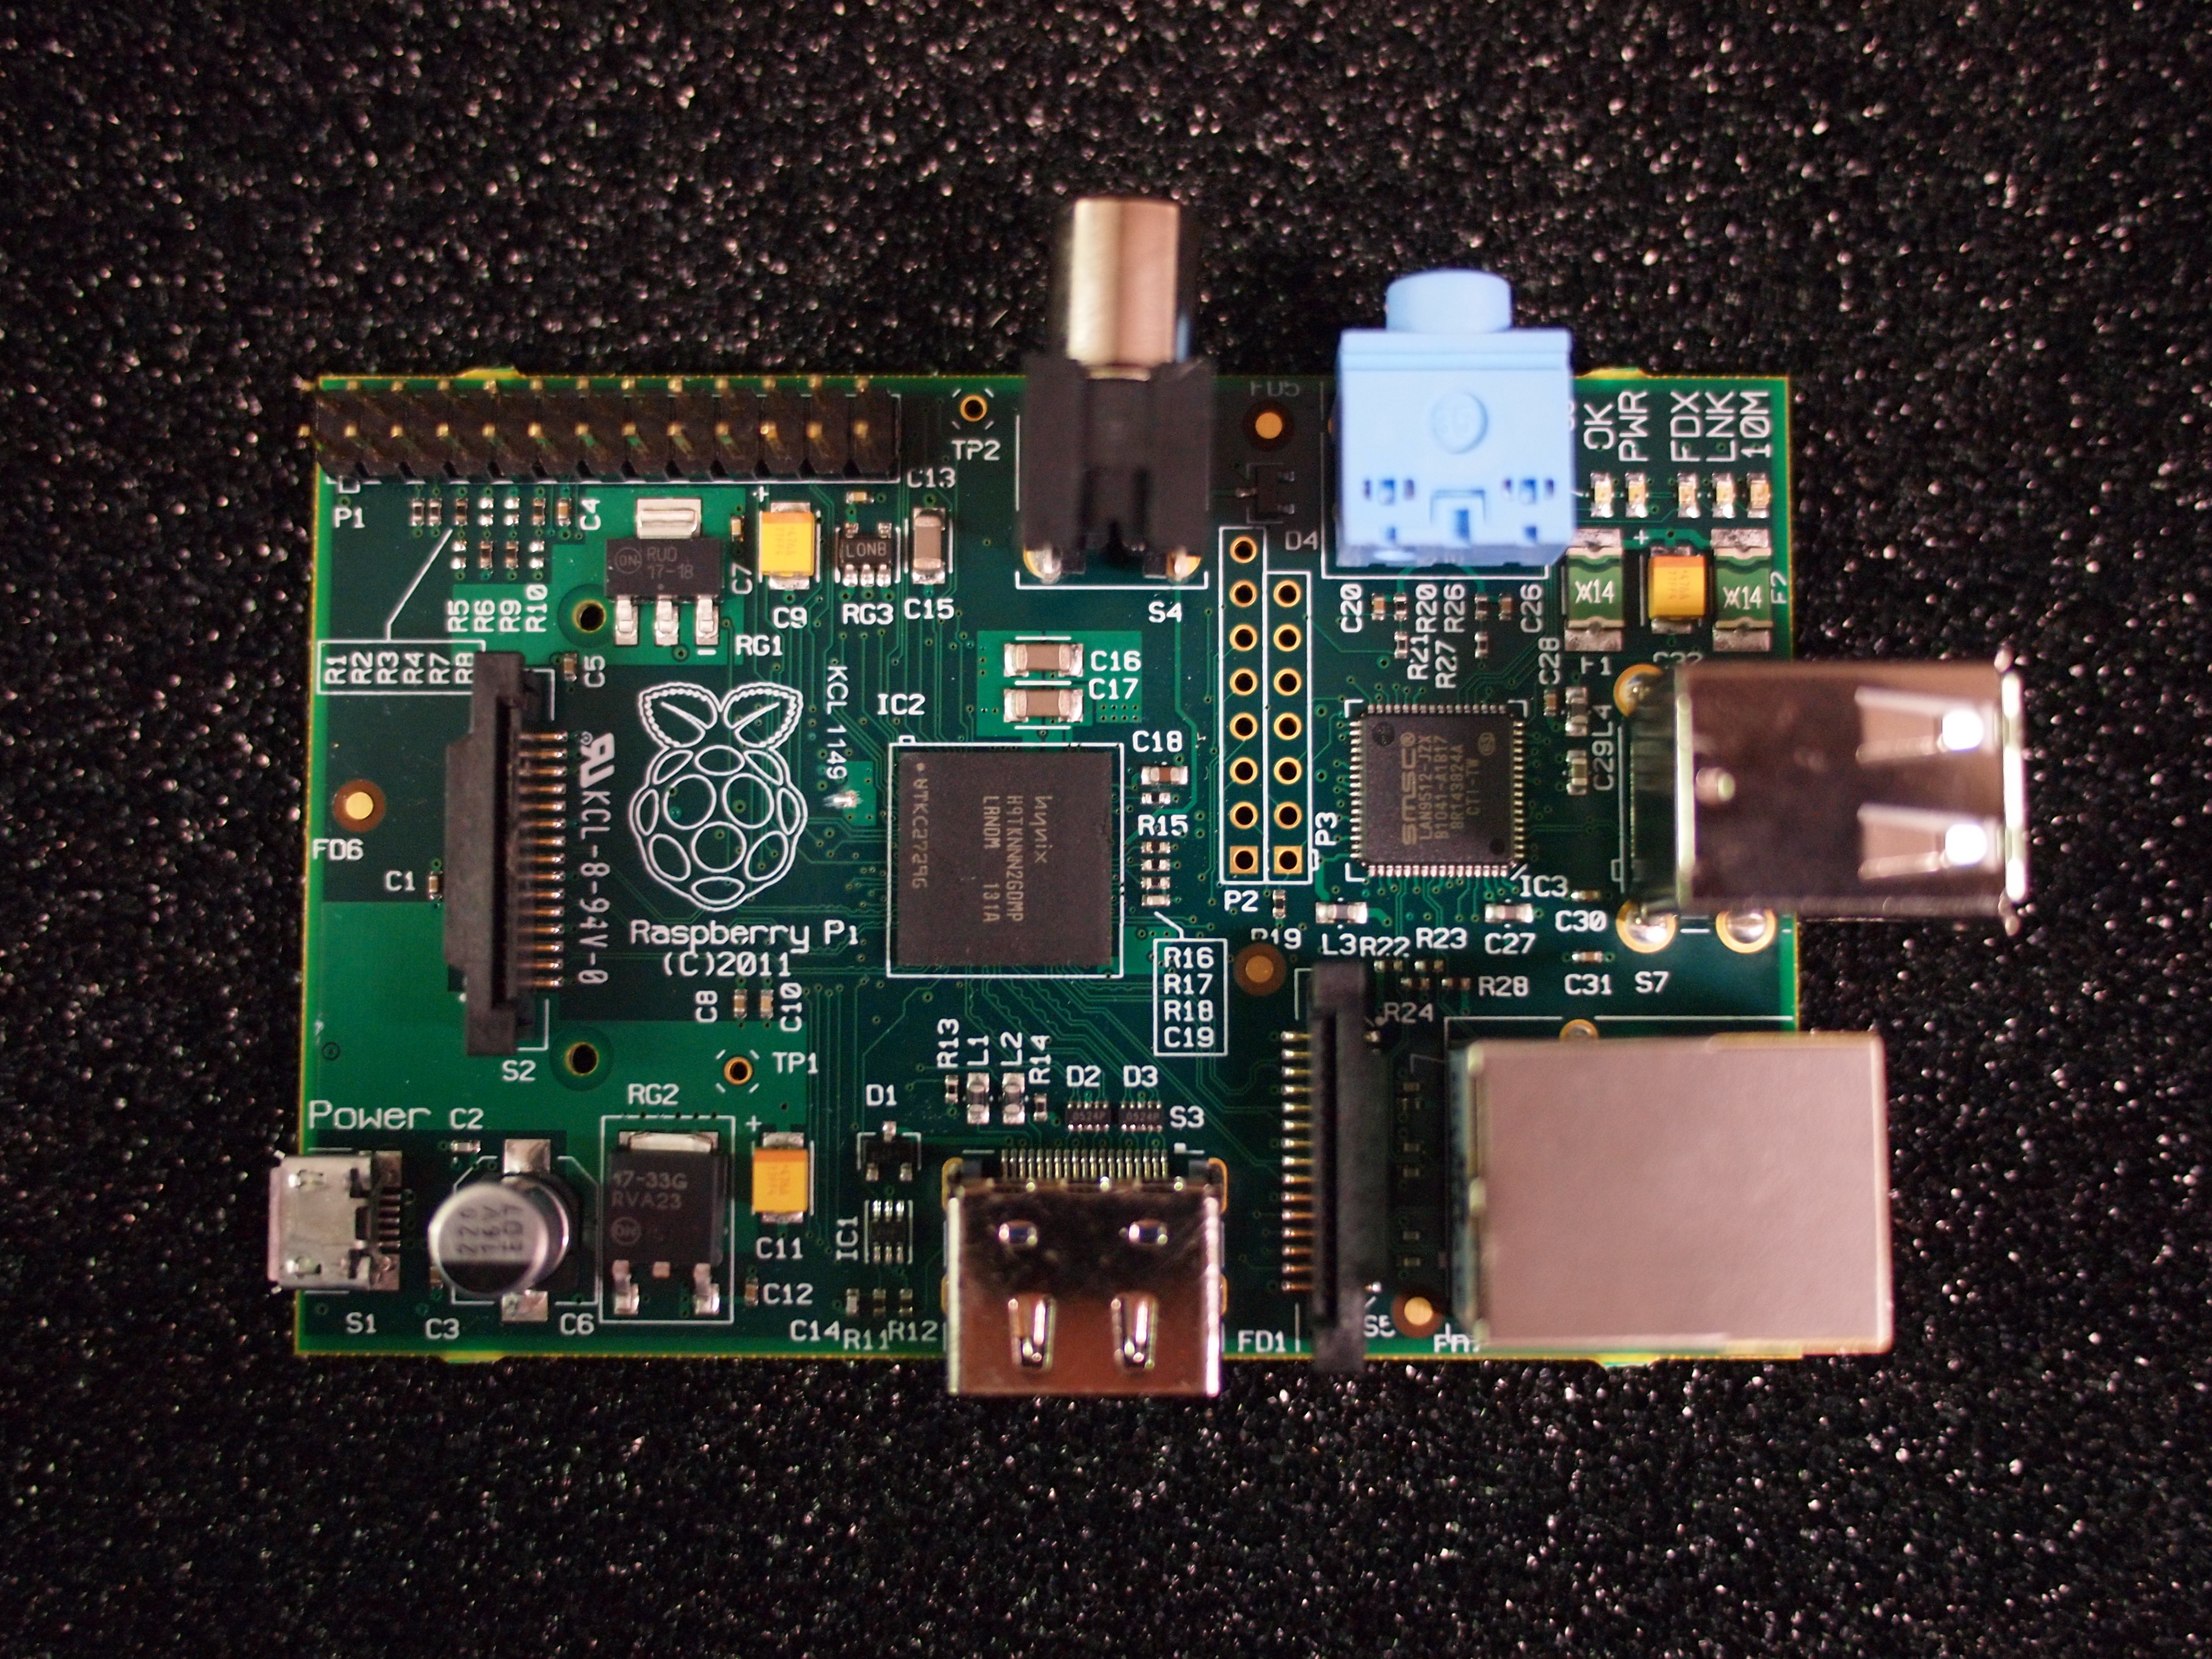 A shot of the Rasberry Pi in beta form.